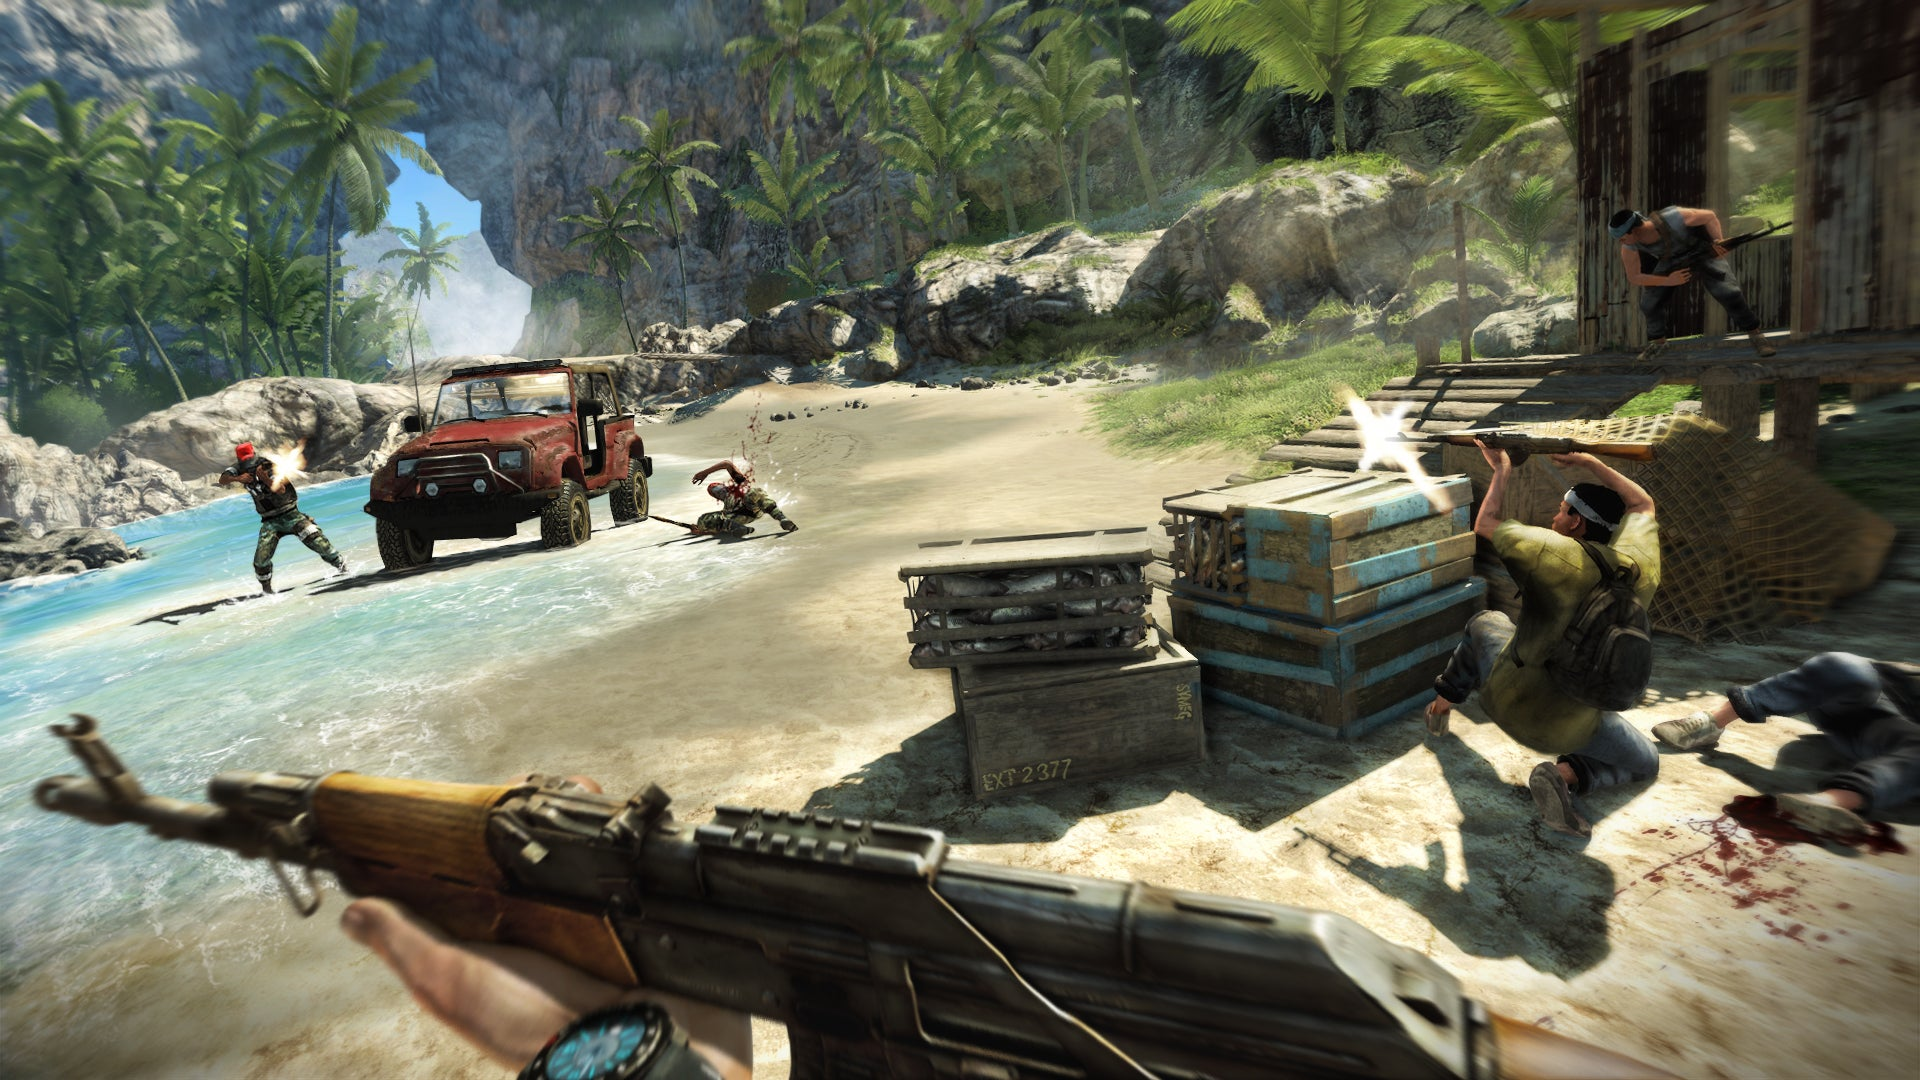 http://pcmedia.ign.com/pc/image/article/121/1218710/far-cry-3-20120214035808822.jpg